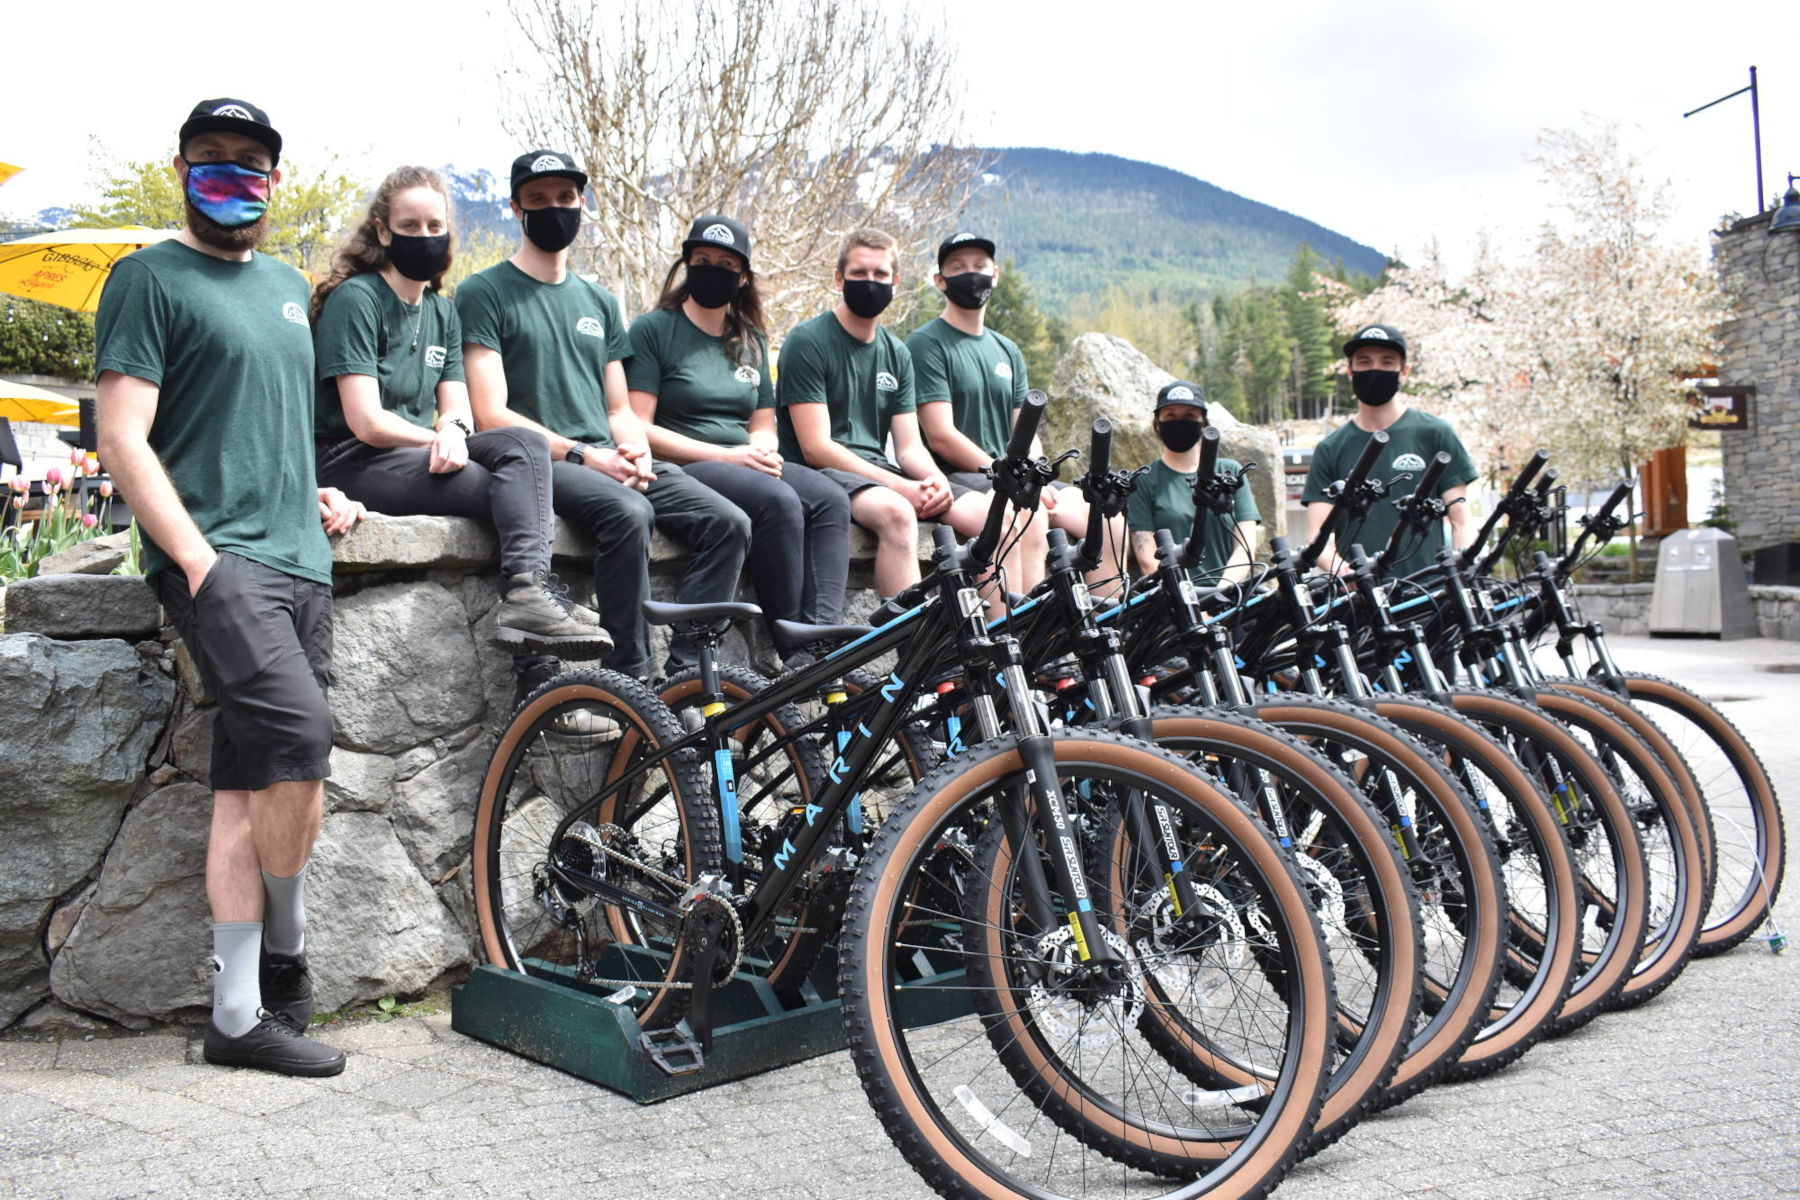 Staff photo with bikes and view of Whistler mountain.